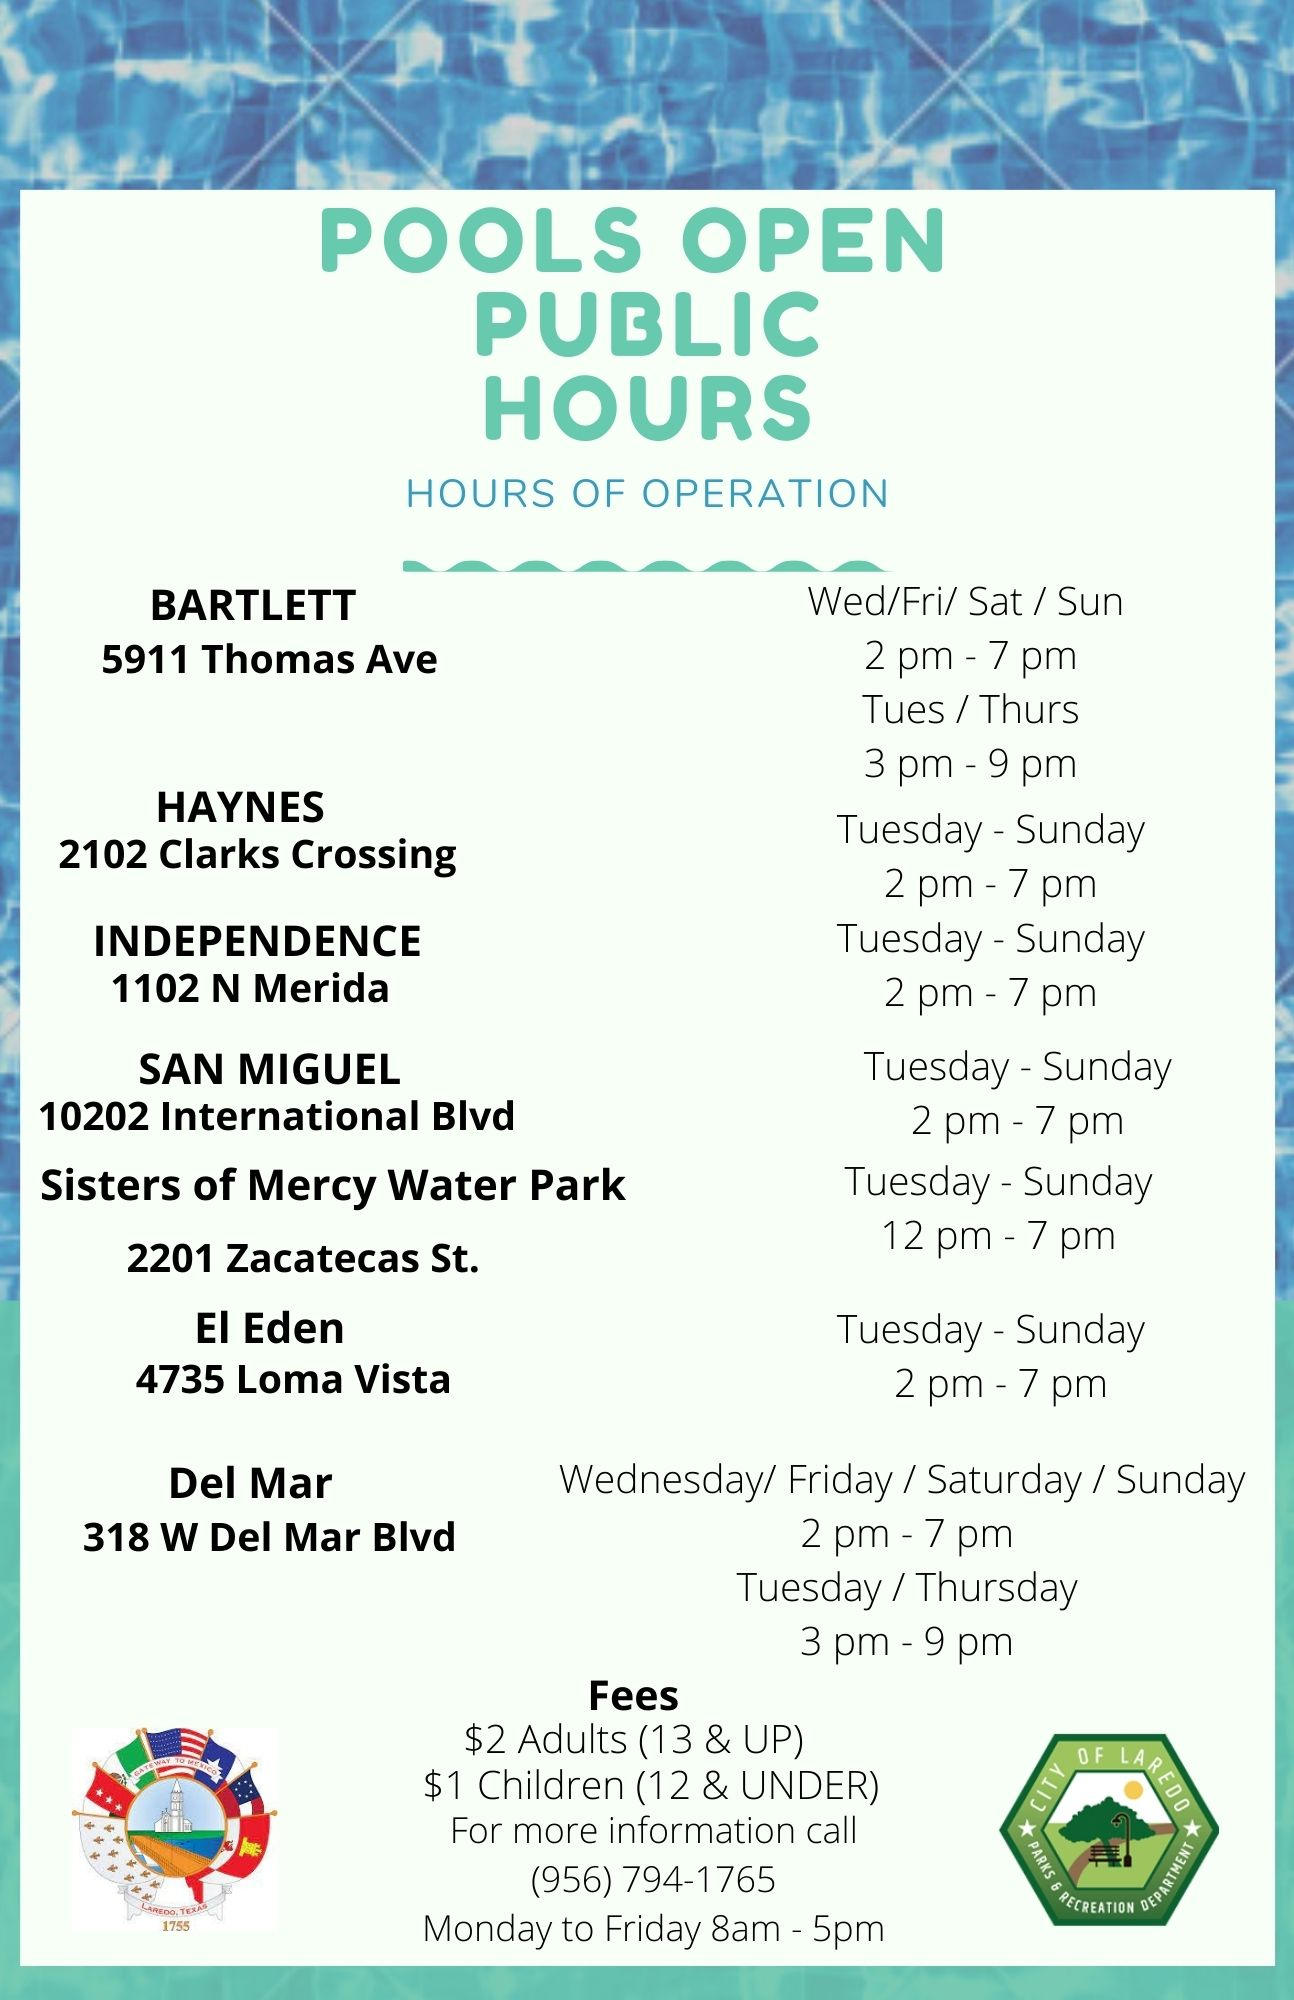 Updated Pool Hours 7-21-21